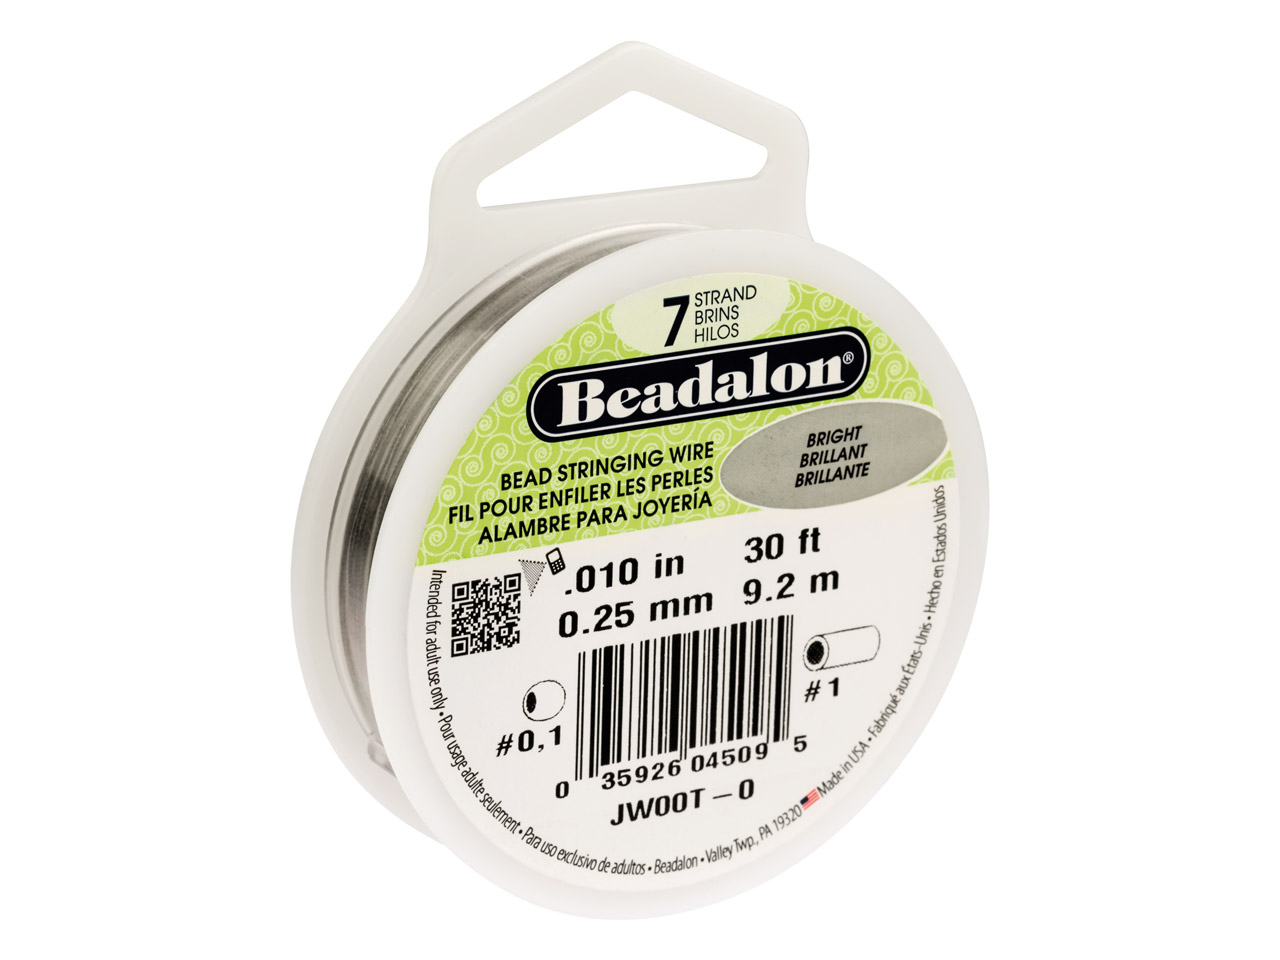 Beadalon 7 Strand Bright 0.25mm X  9.2m Wire